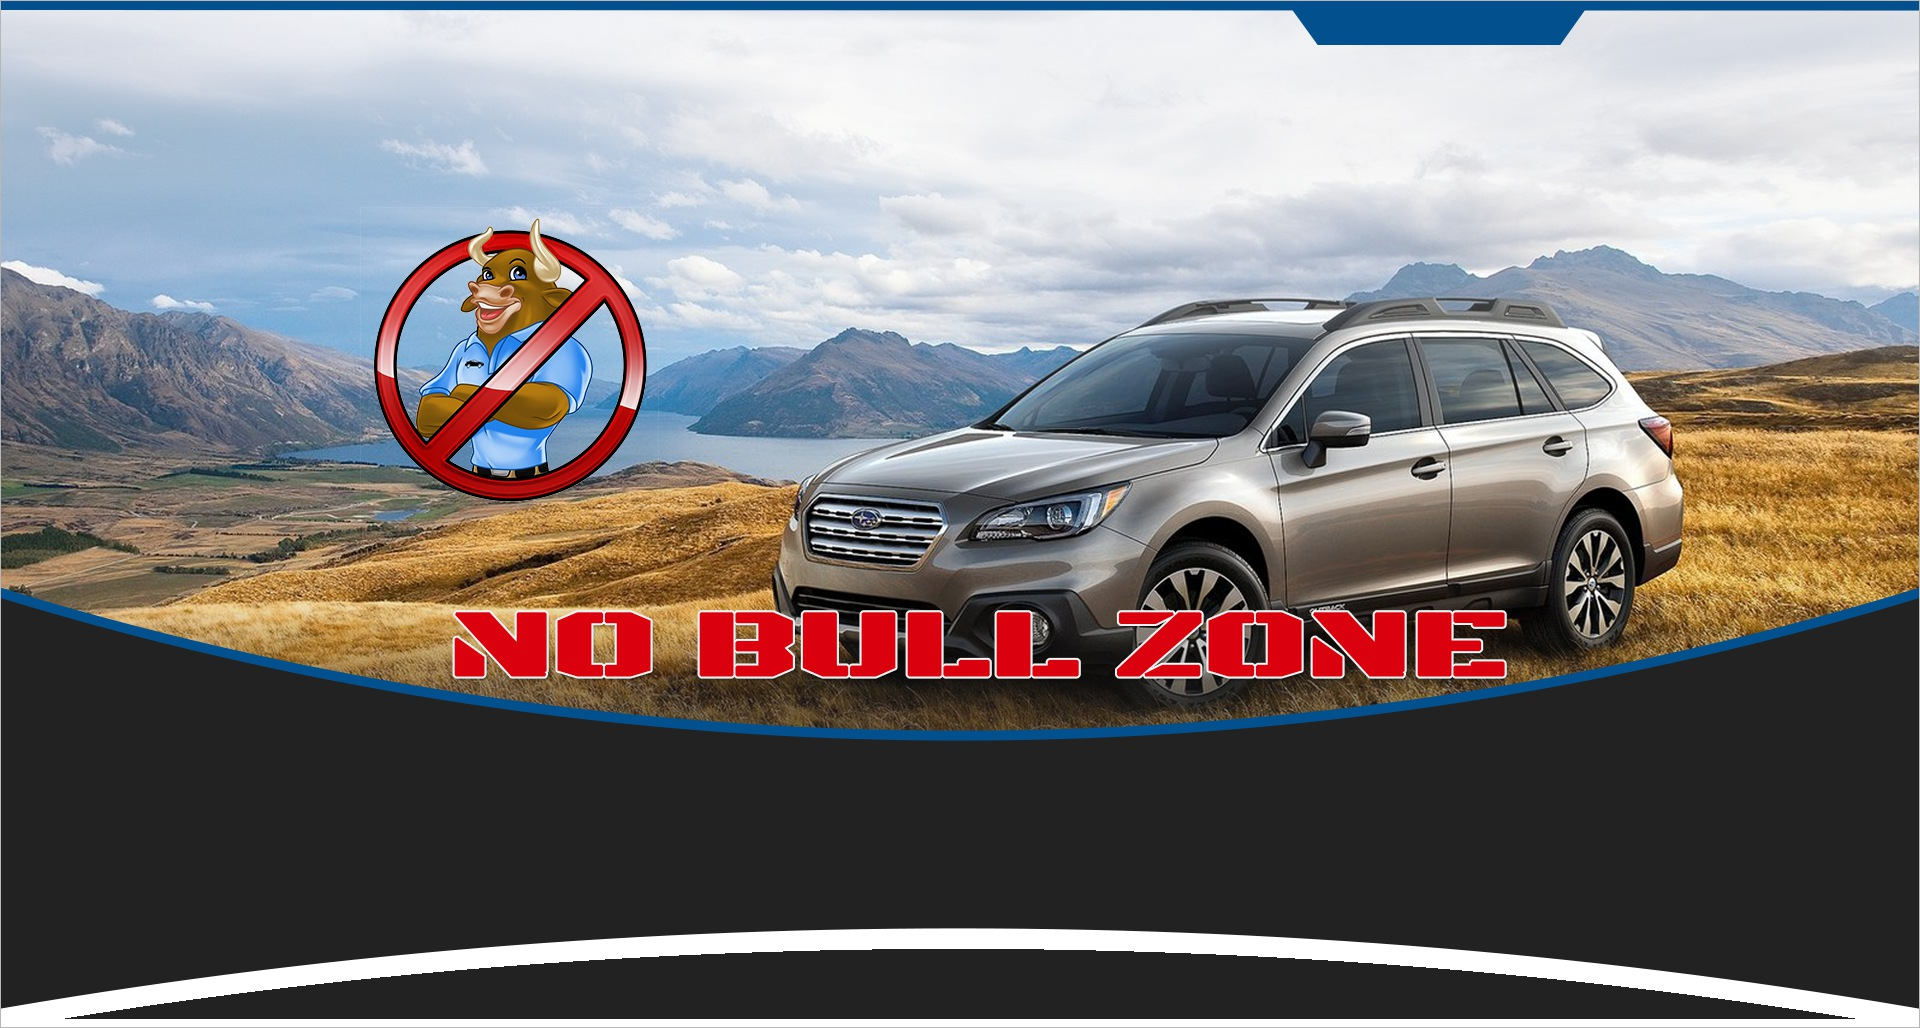 Cars for Sale Near Me for 5000 Awesome Used Trucks for Sale In Nc Under 5000 Lovely Car Guys Used Cars